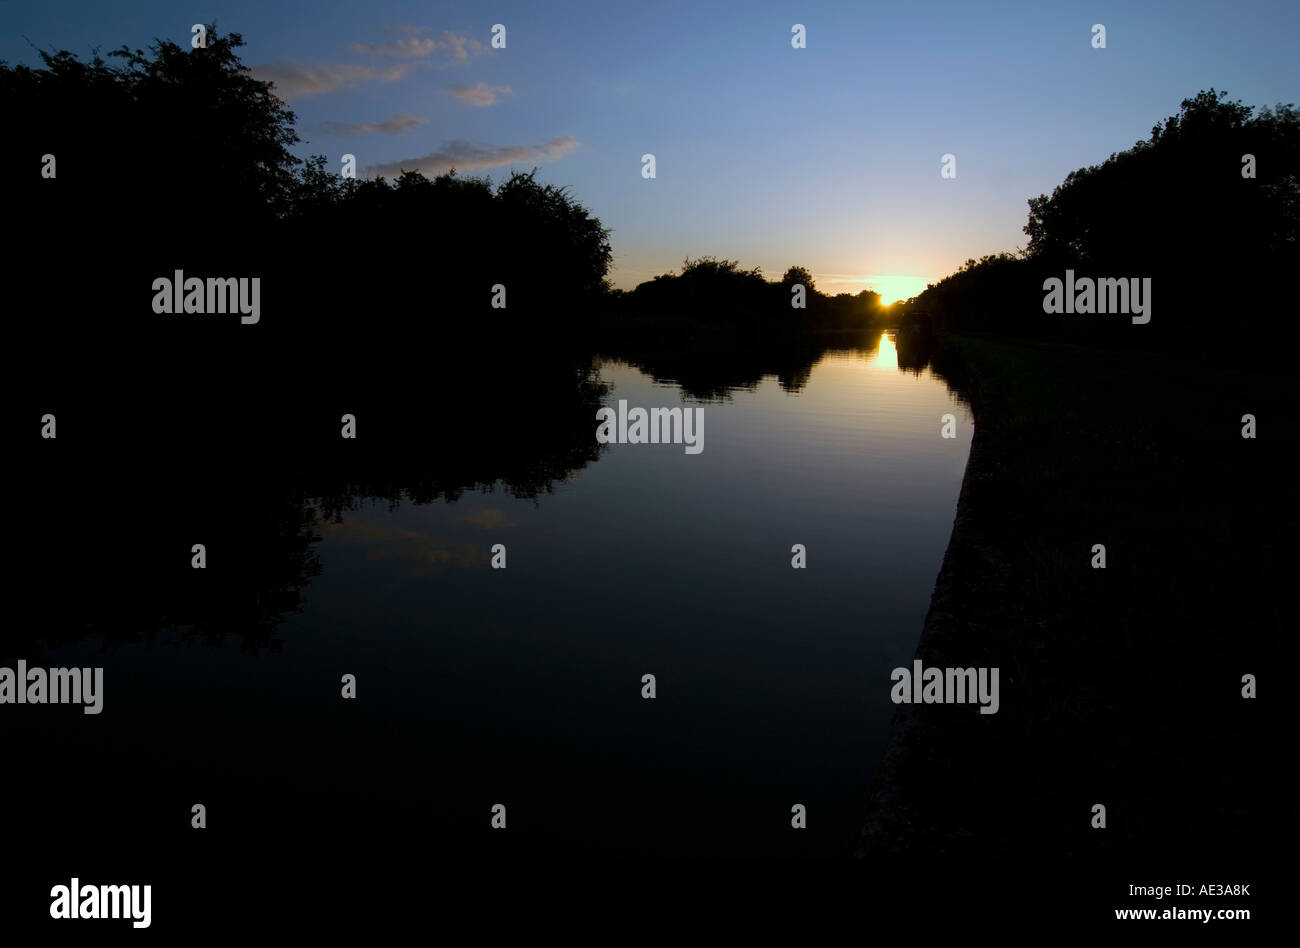 Doug Blane Narrowboat on the canal - Stock Image